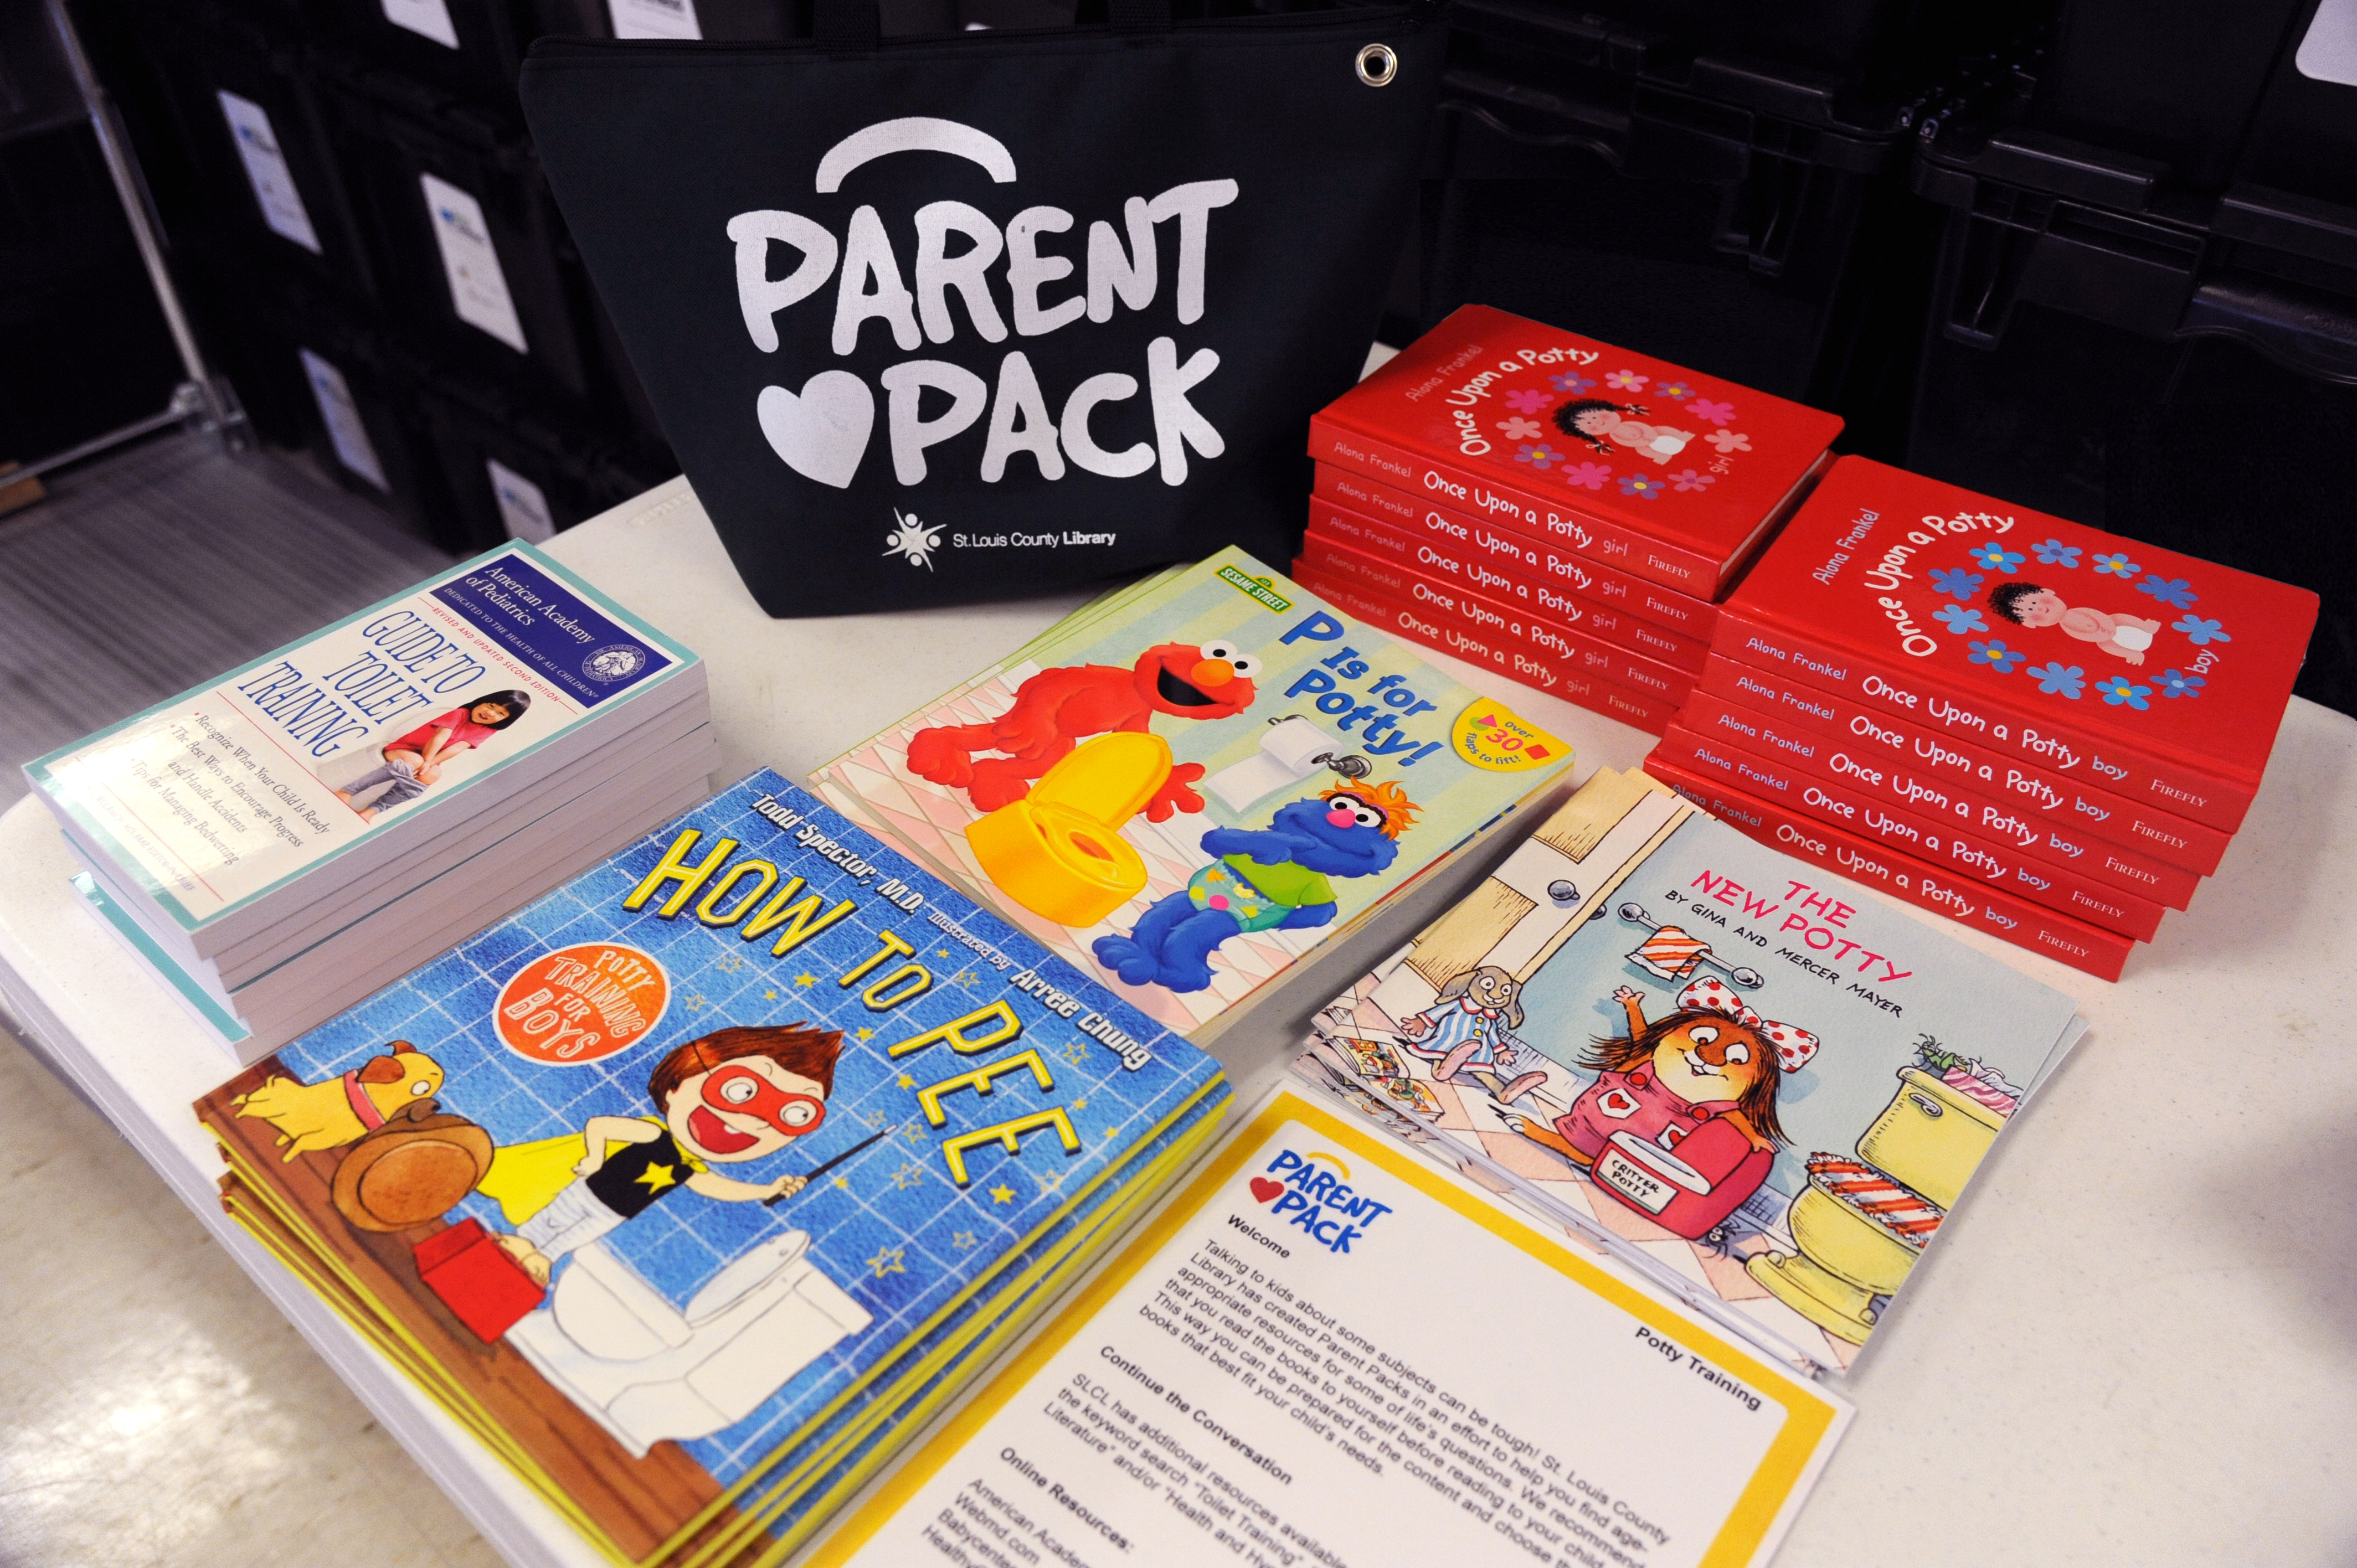 Parent Pack with books on potty training